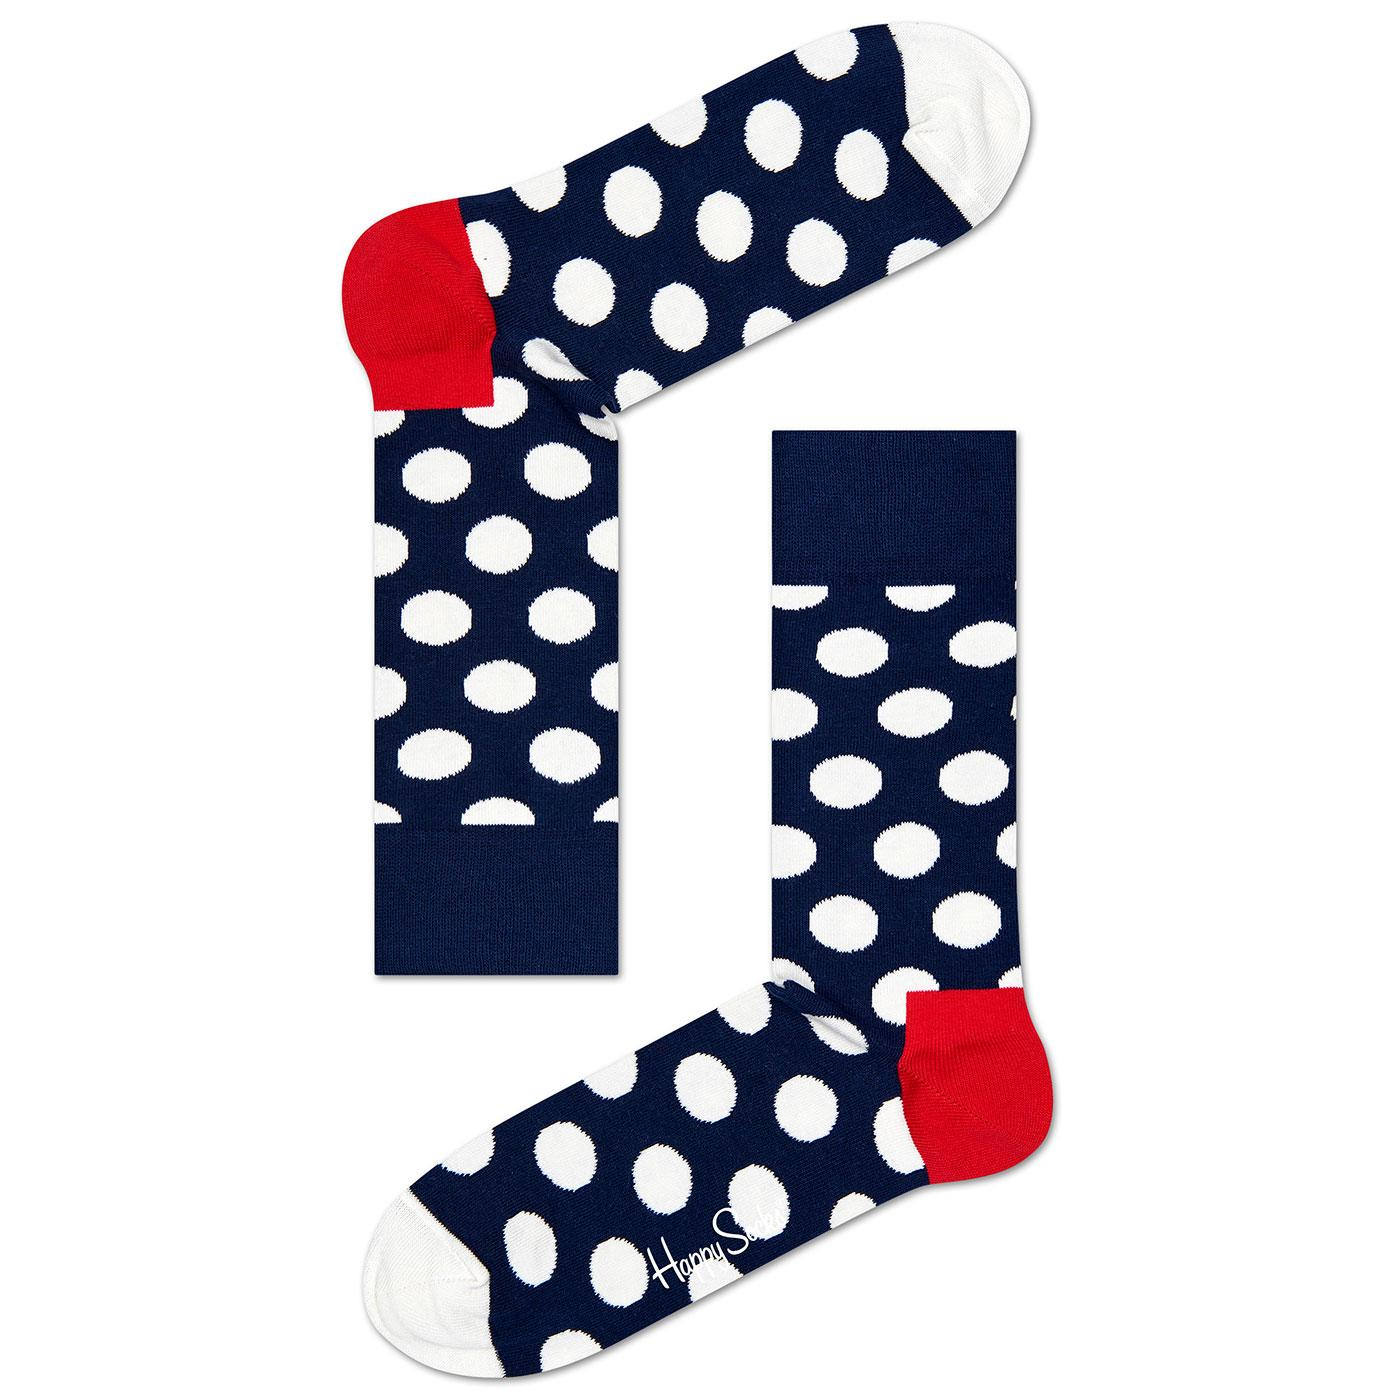 + Big Dot HAPPY SOCKS Retro Polka Dot Socks (Navy)